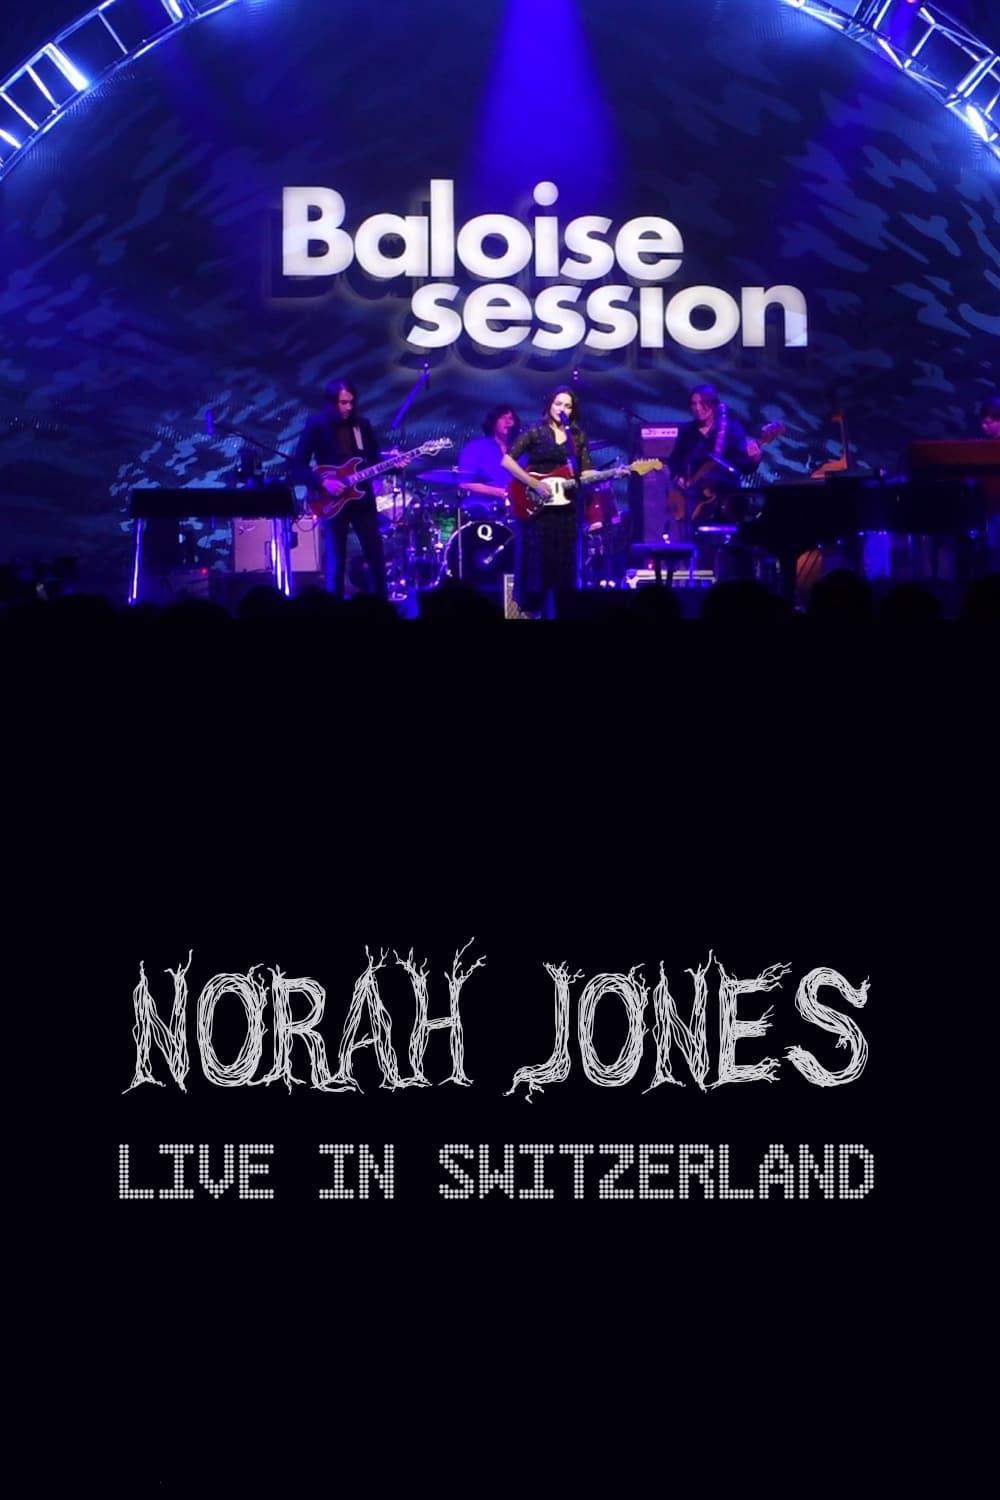 Norah Jones - Baloise Session (2016)